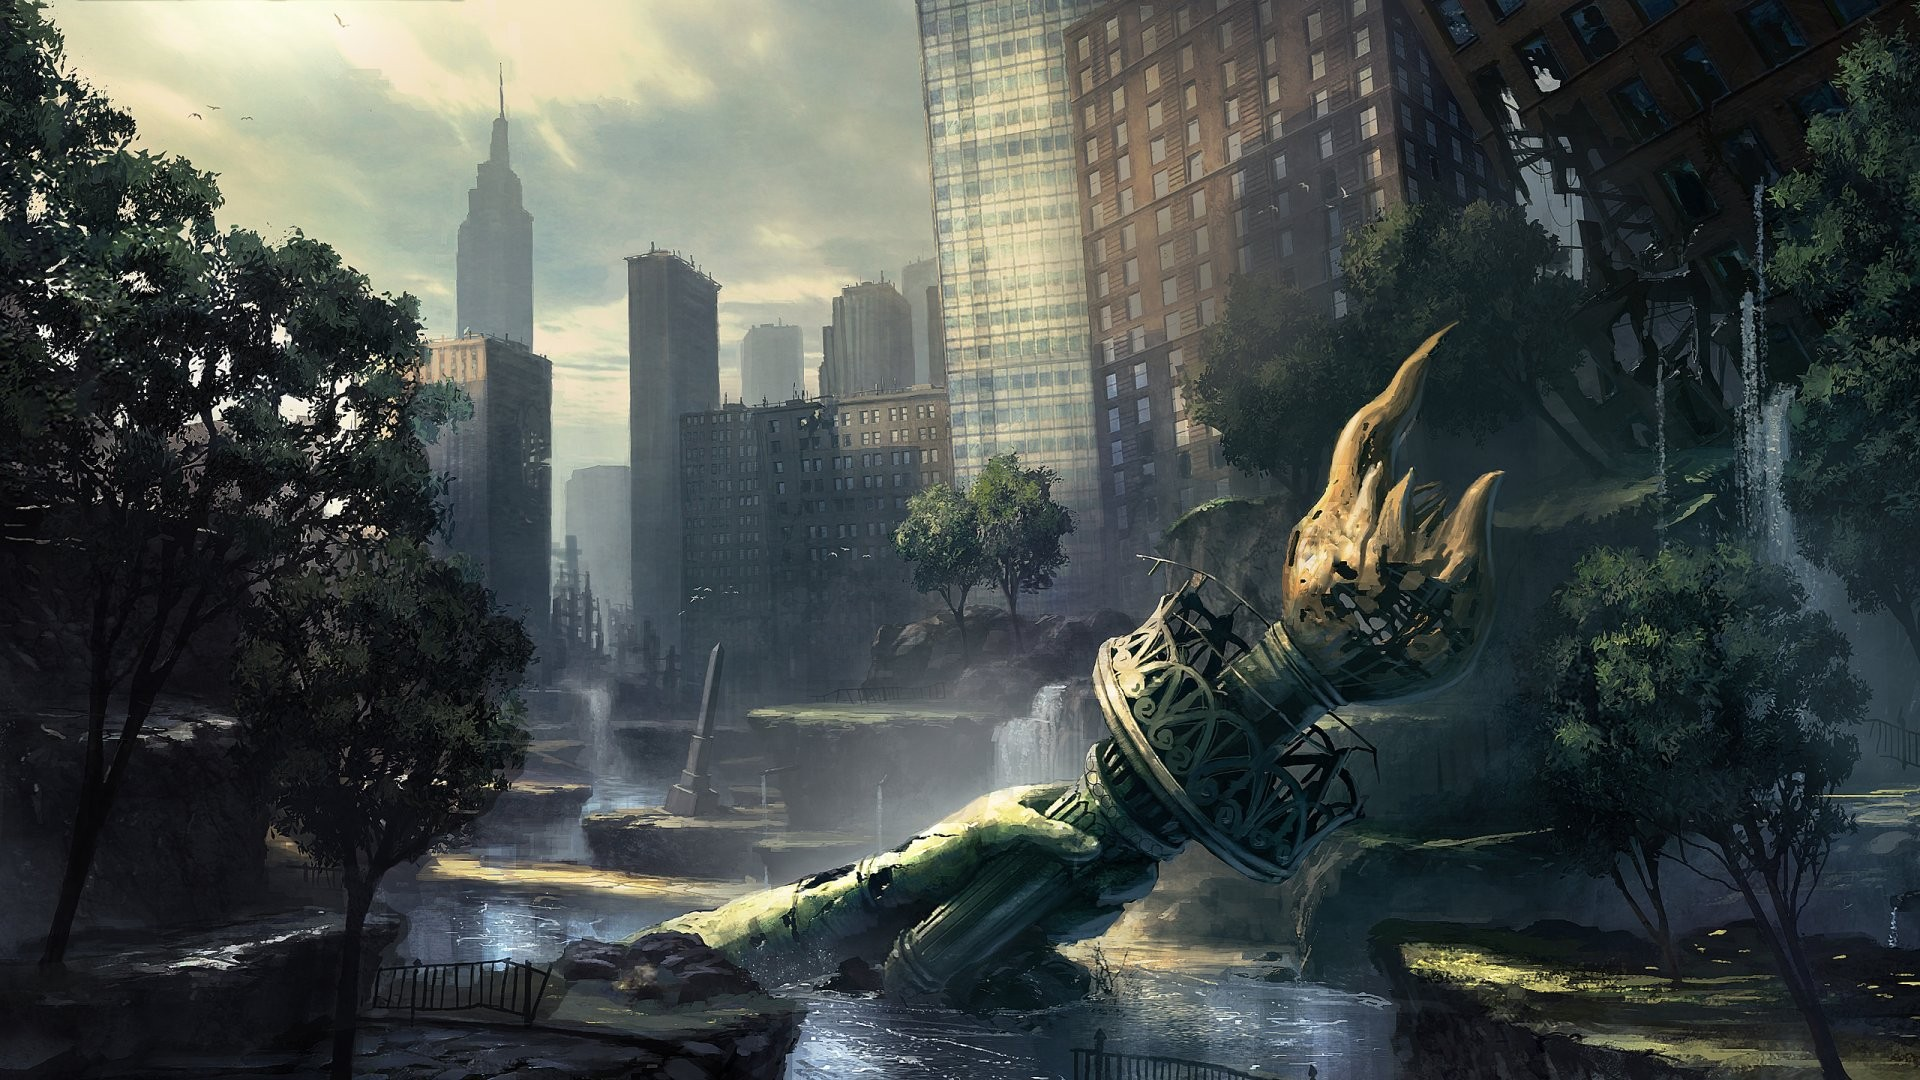 ruins-post-apocalyptic-new-york-city-statue-of-liberty-flooded-HD-Wallpapers